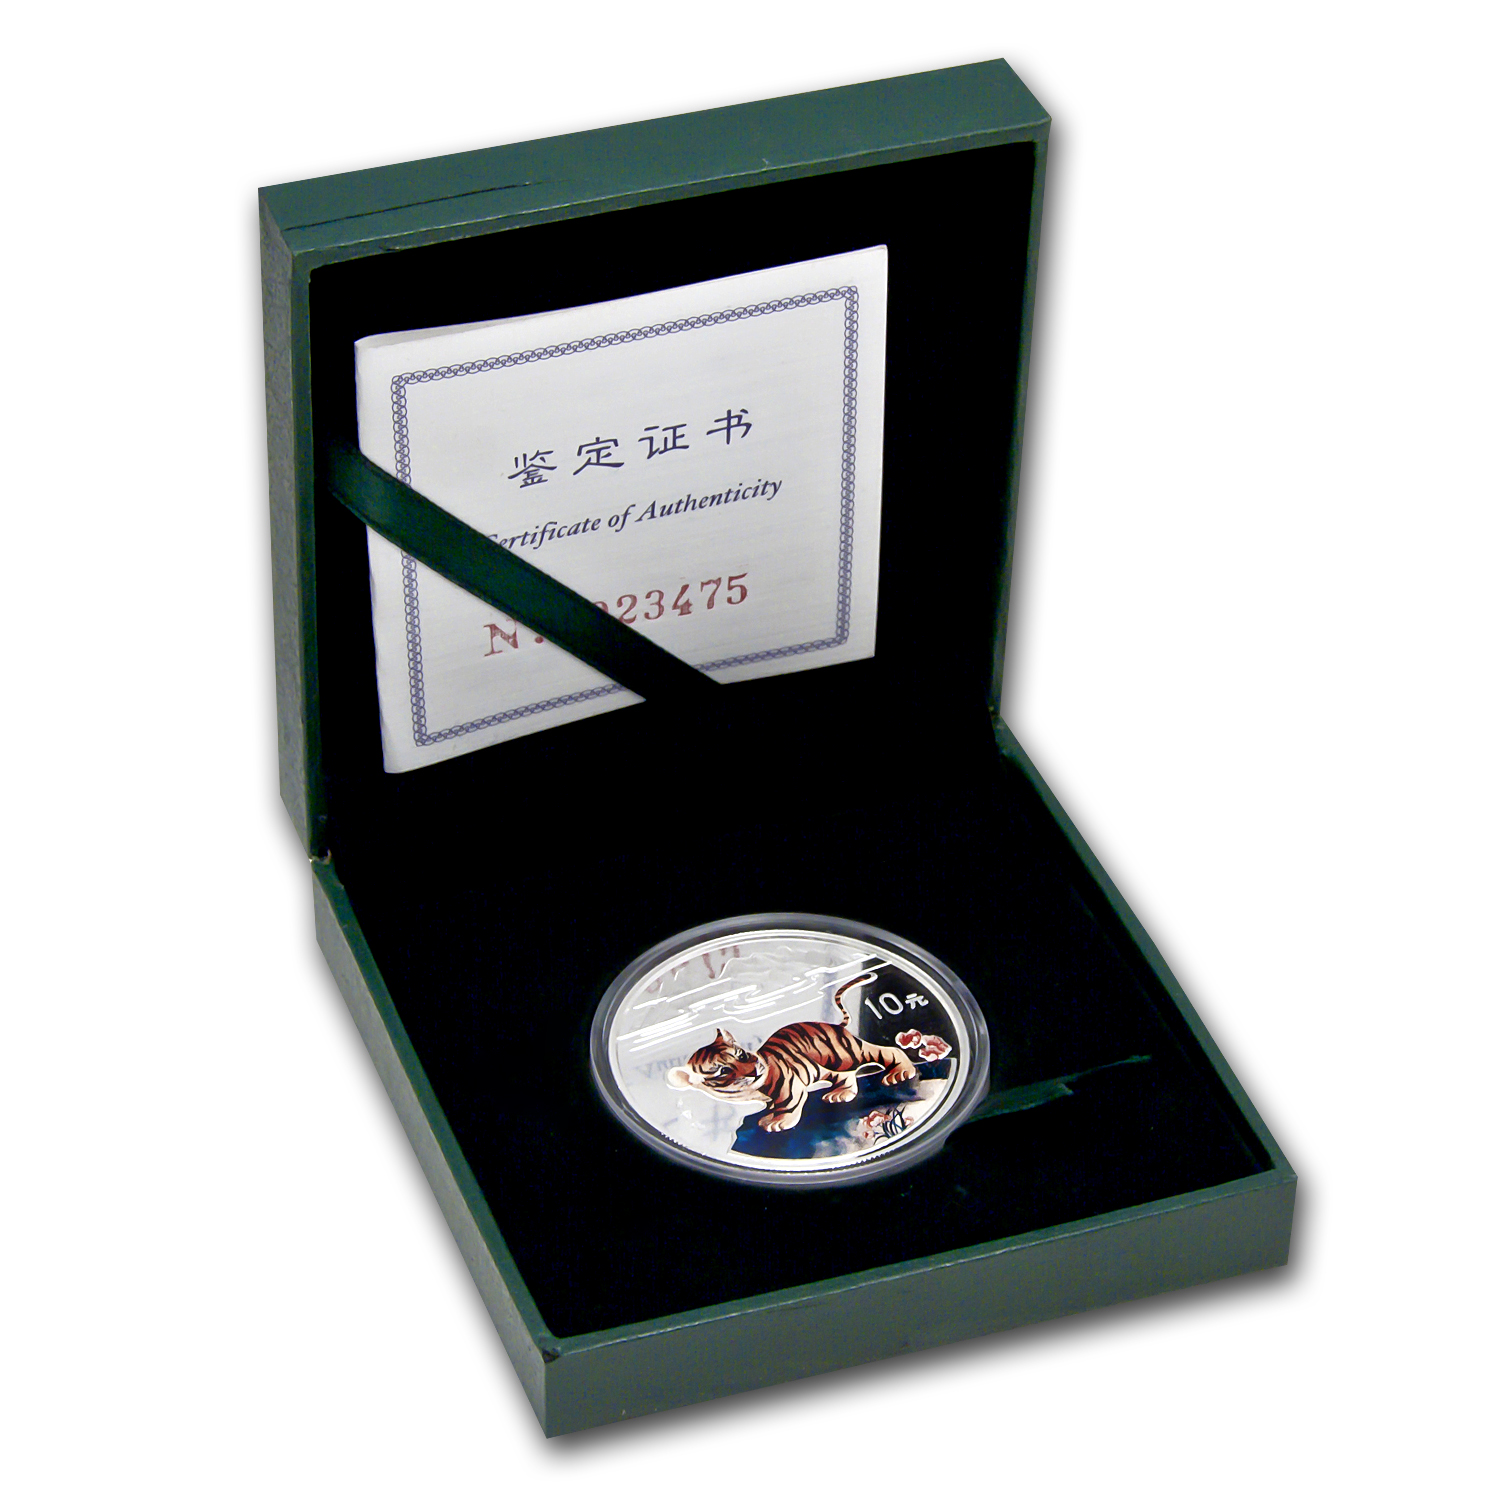 1998 China 1 oz Silver Year of the Tiger (Colored, Box & COA)